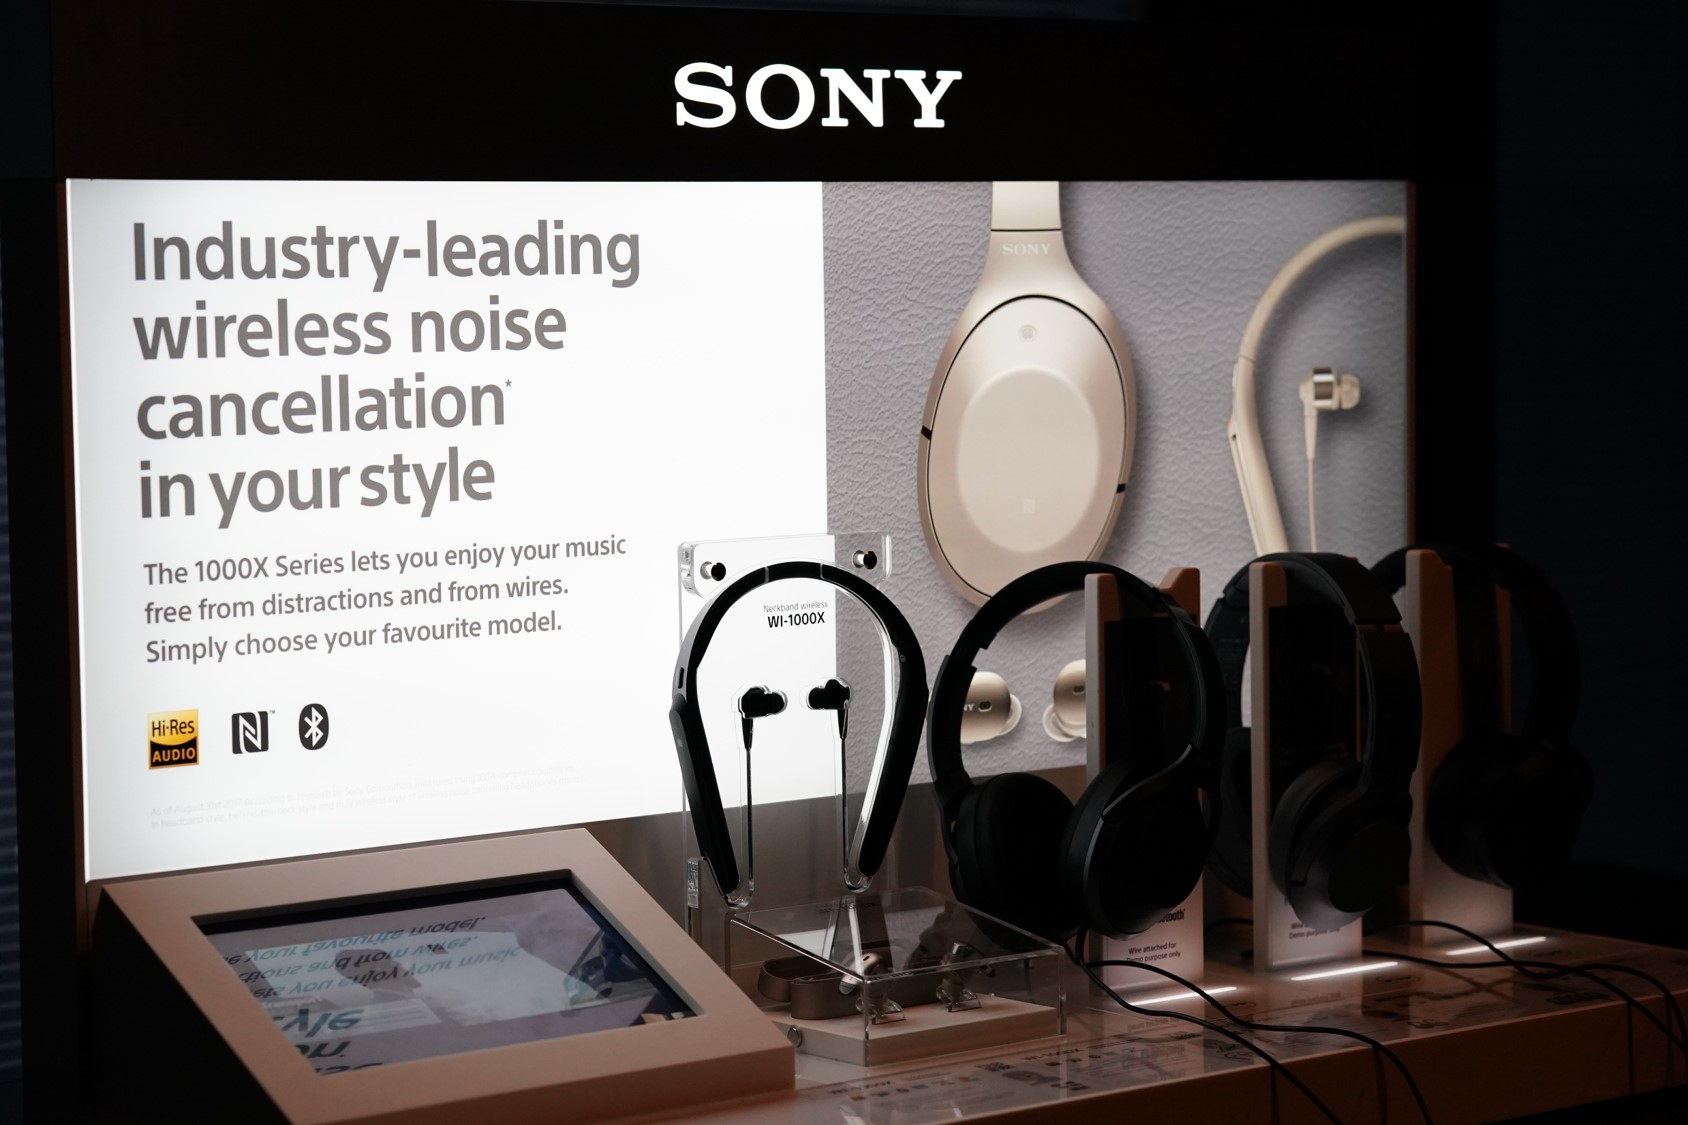 Sony Vienna Event 2 Feb 2018